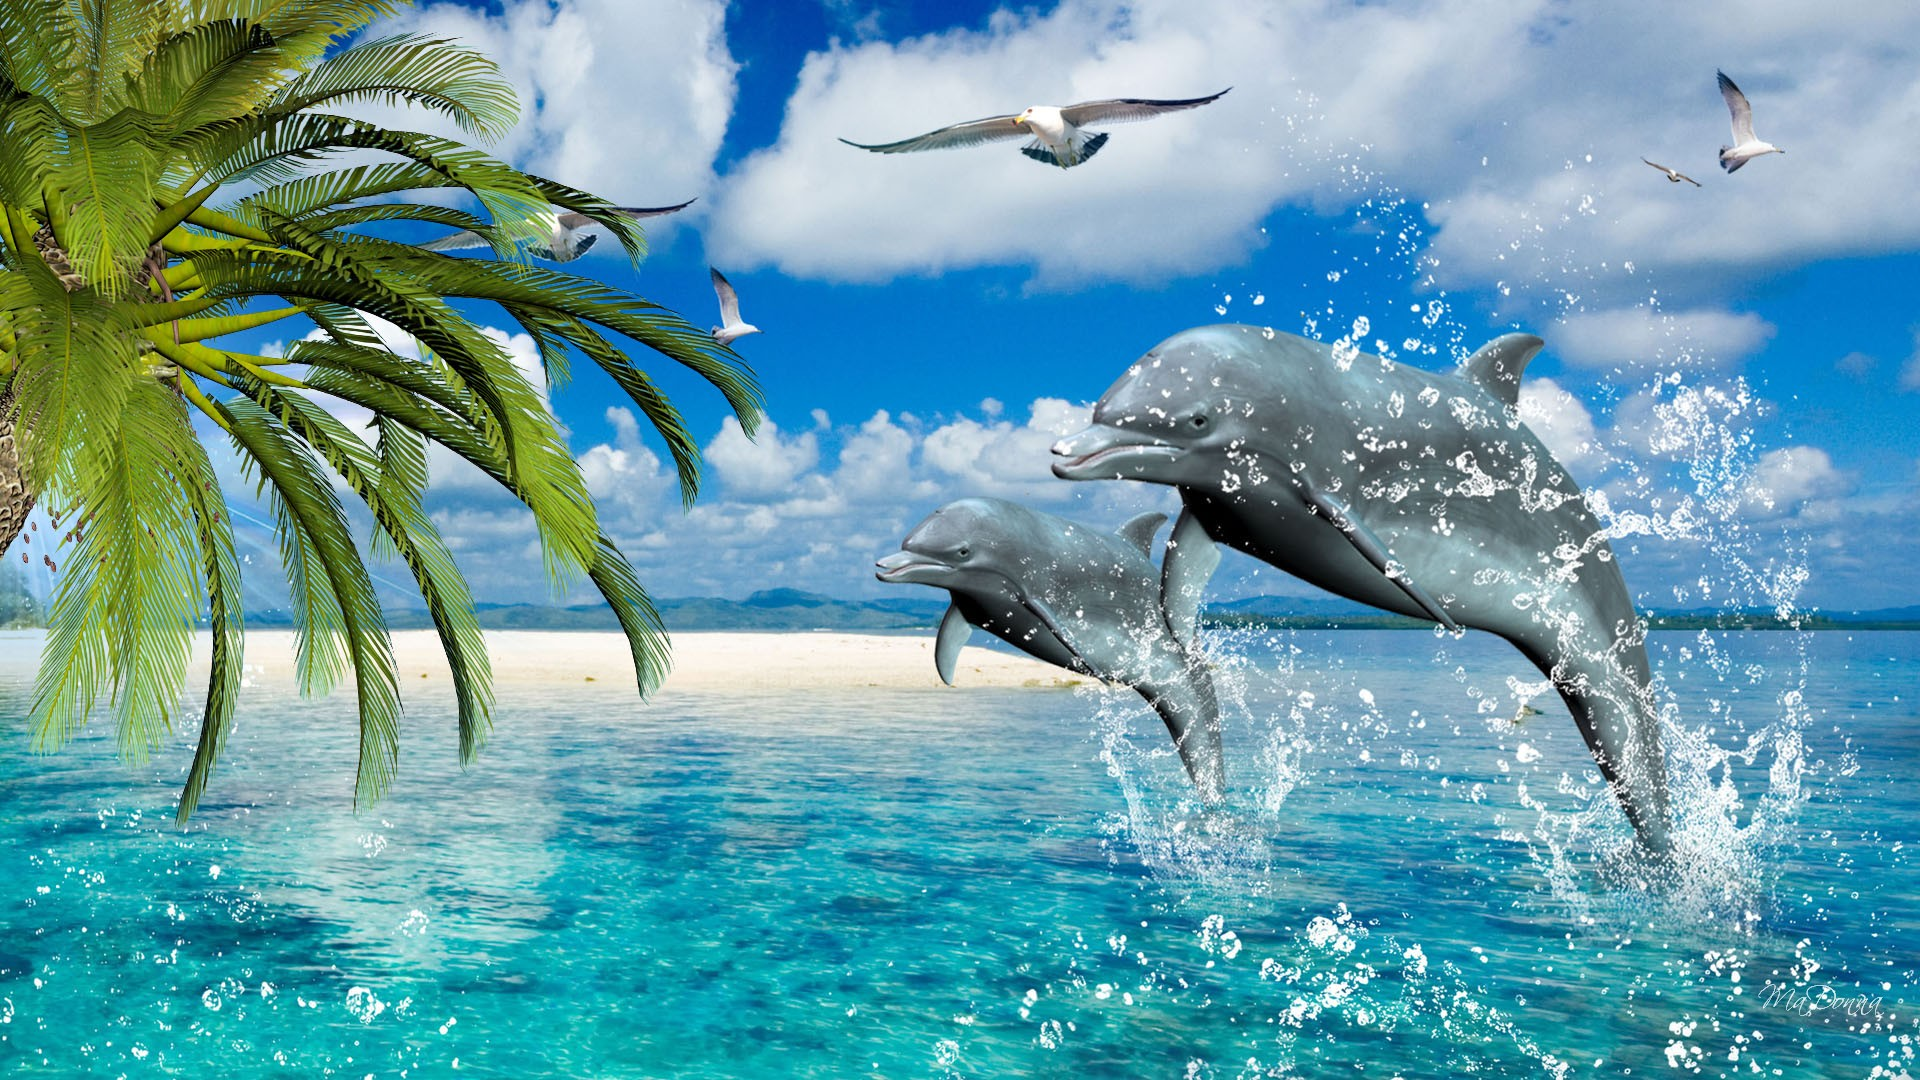 Dolphin-Best-wallpaper-wpc5804212